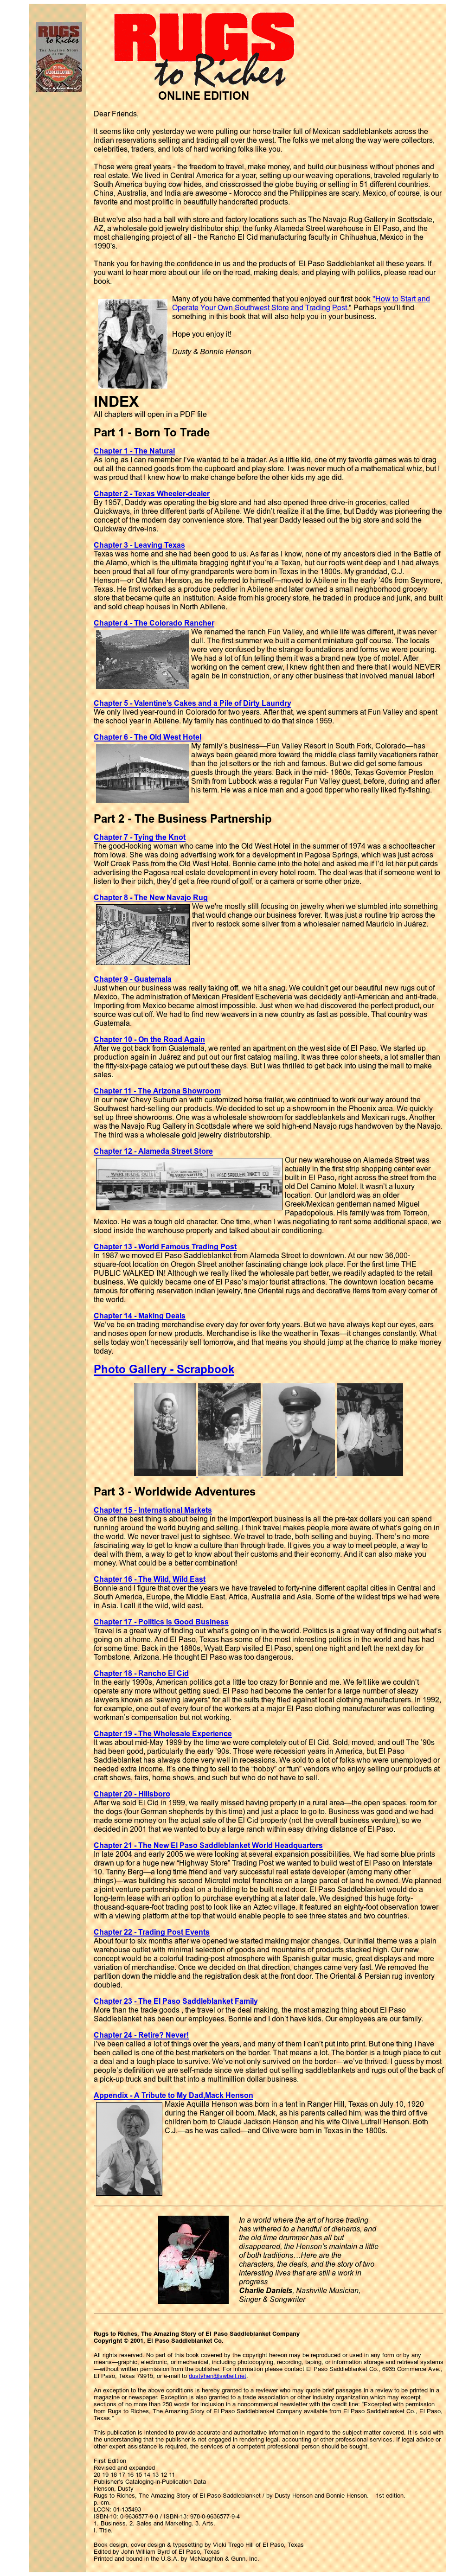 Rugs To Riches Book Website History